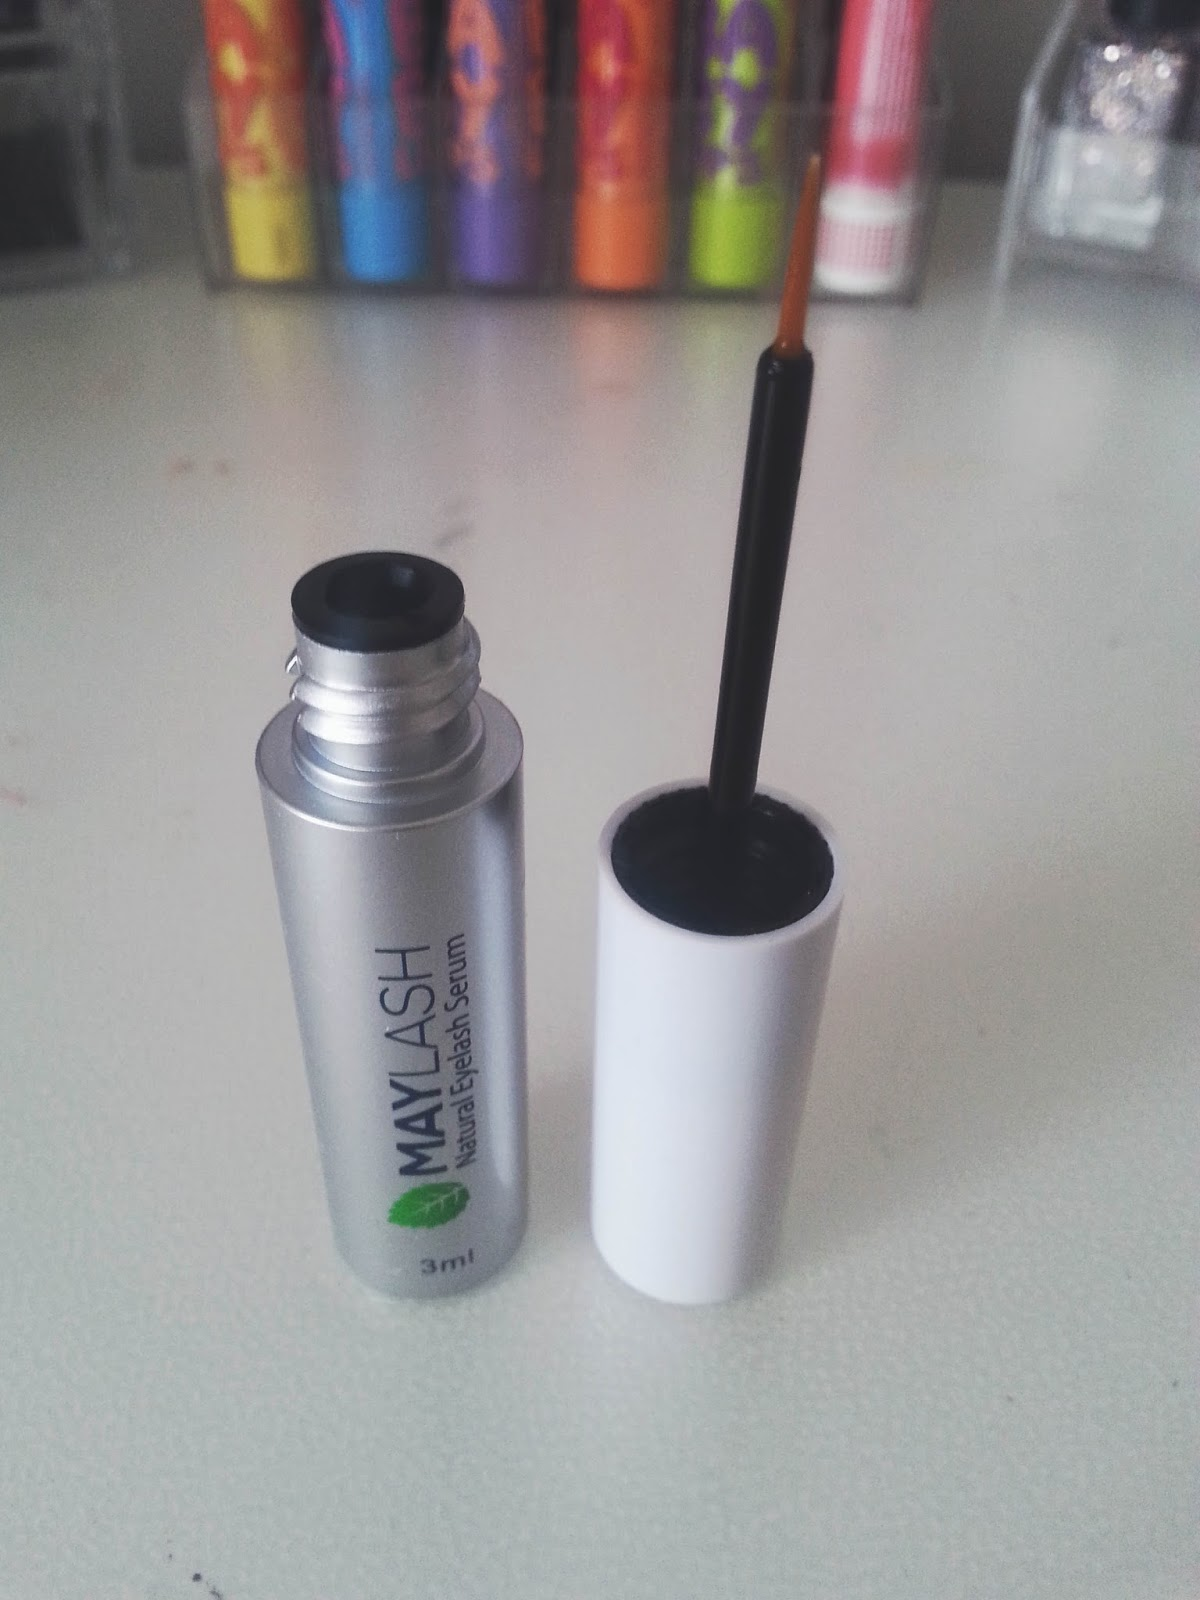 Maylash Natural Eyelash Serum